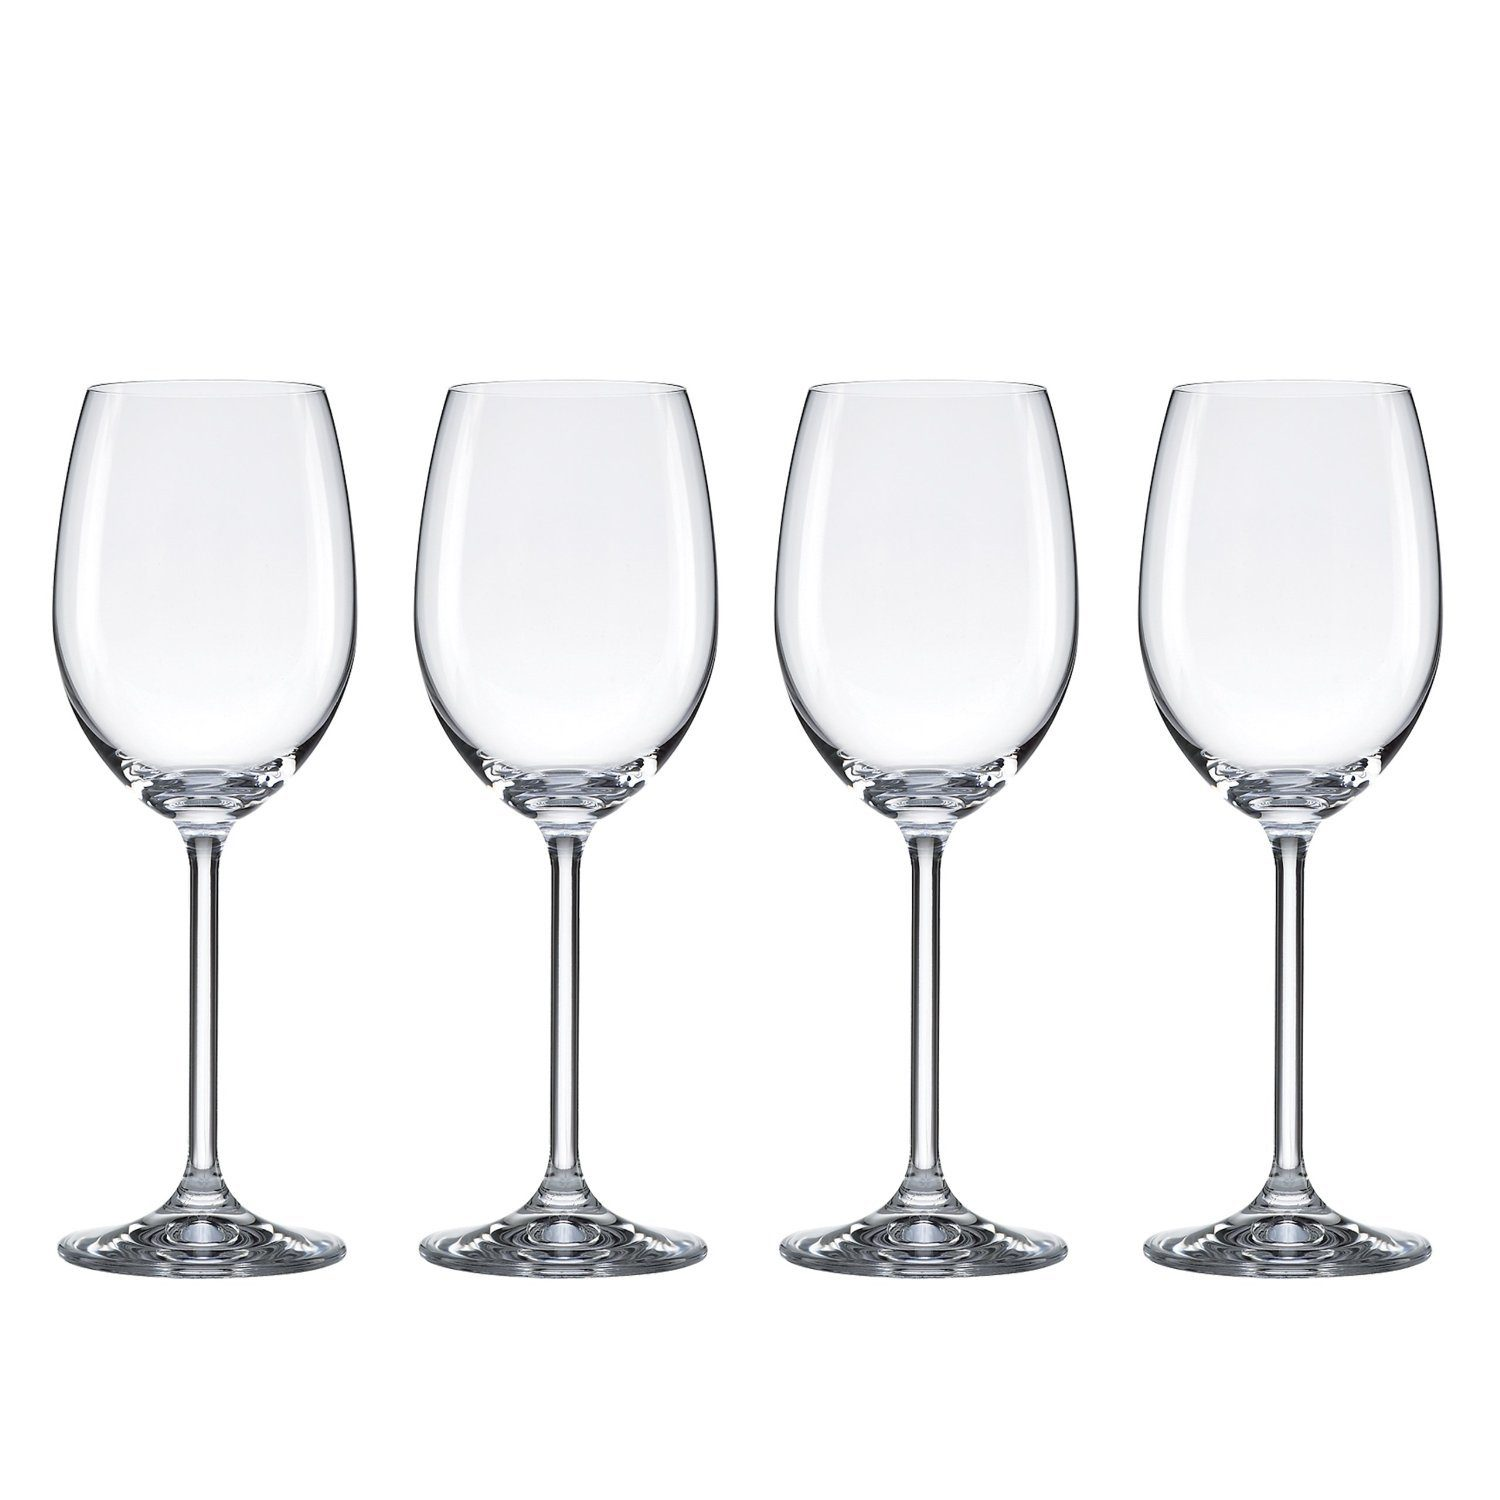 Food & Wine For Gorham The Entertainer Wine Glasses, White, Set of 4 Only $10.06 (Reg. $72)!